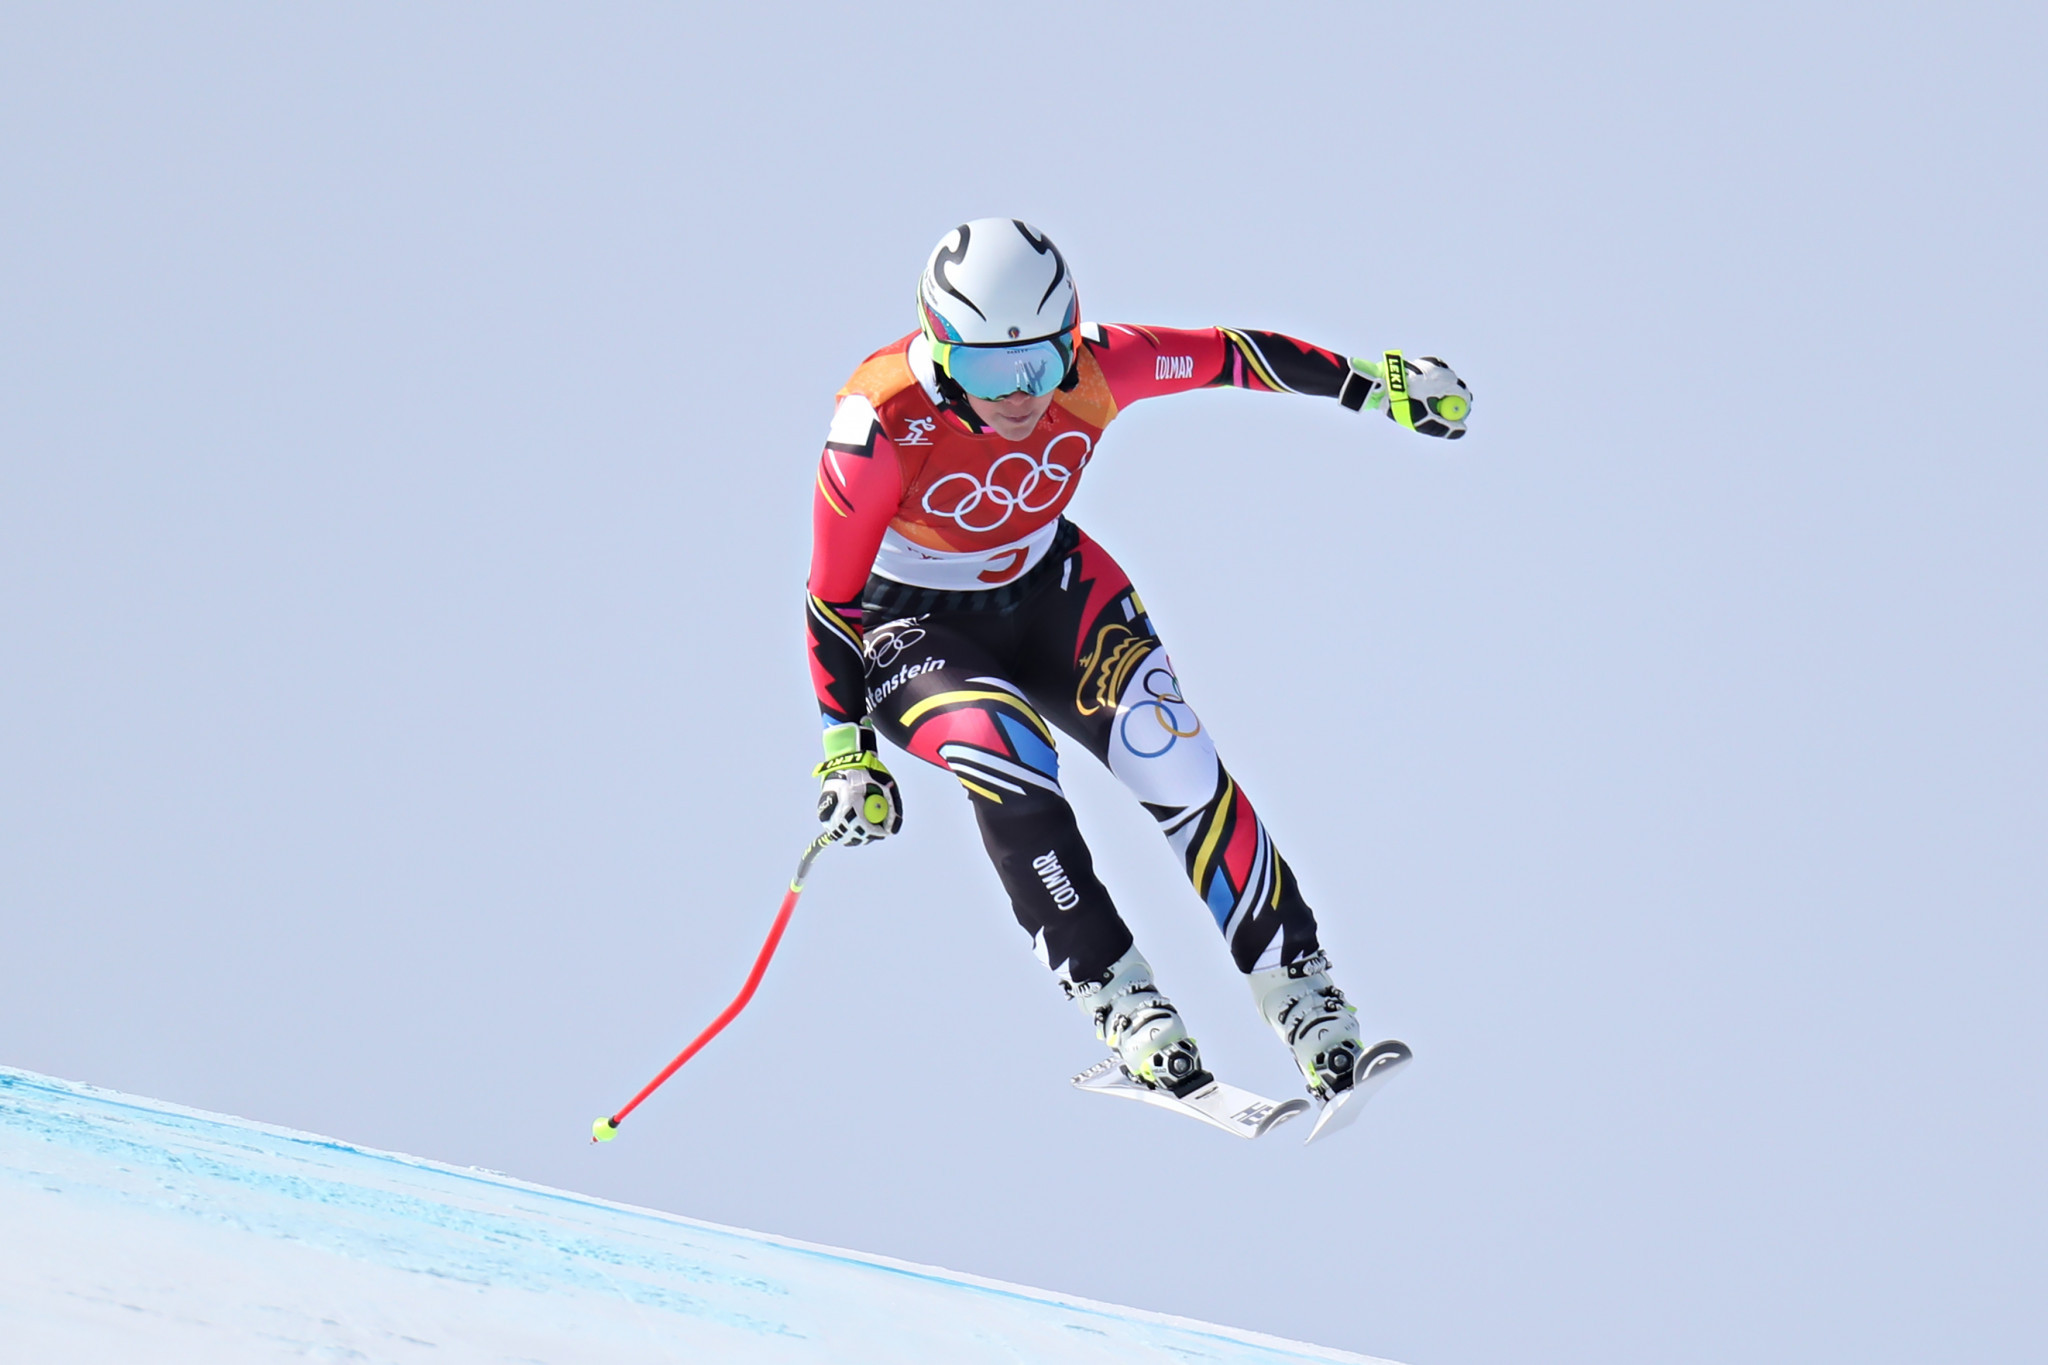 Tina Wierather's bronze in the women's Super-G at Pyeongchang 2018 was Liechtenstein's most recent Olympic medal ©Getty Images